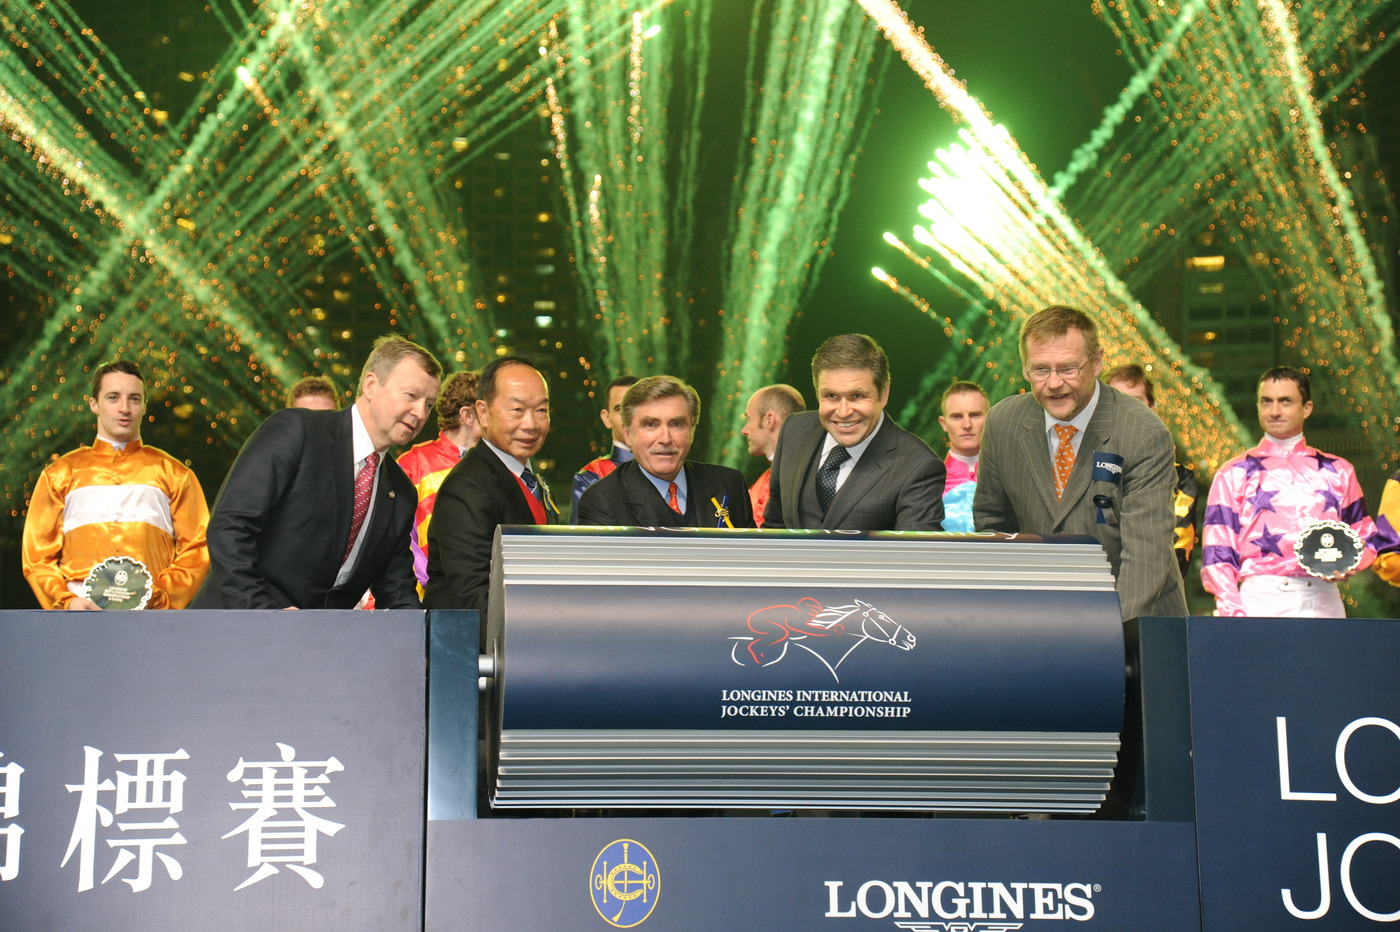 Longines Flat Racing Event: Joao Moreira, winner of the Longines International Jockeys' Championship with the presence of Aaron Kwok Fu Shing 1